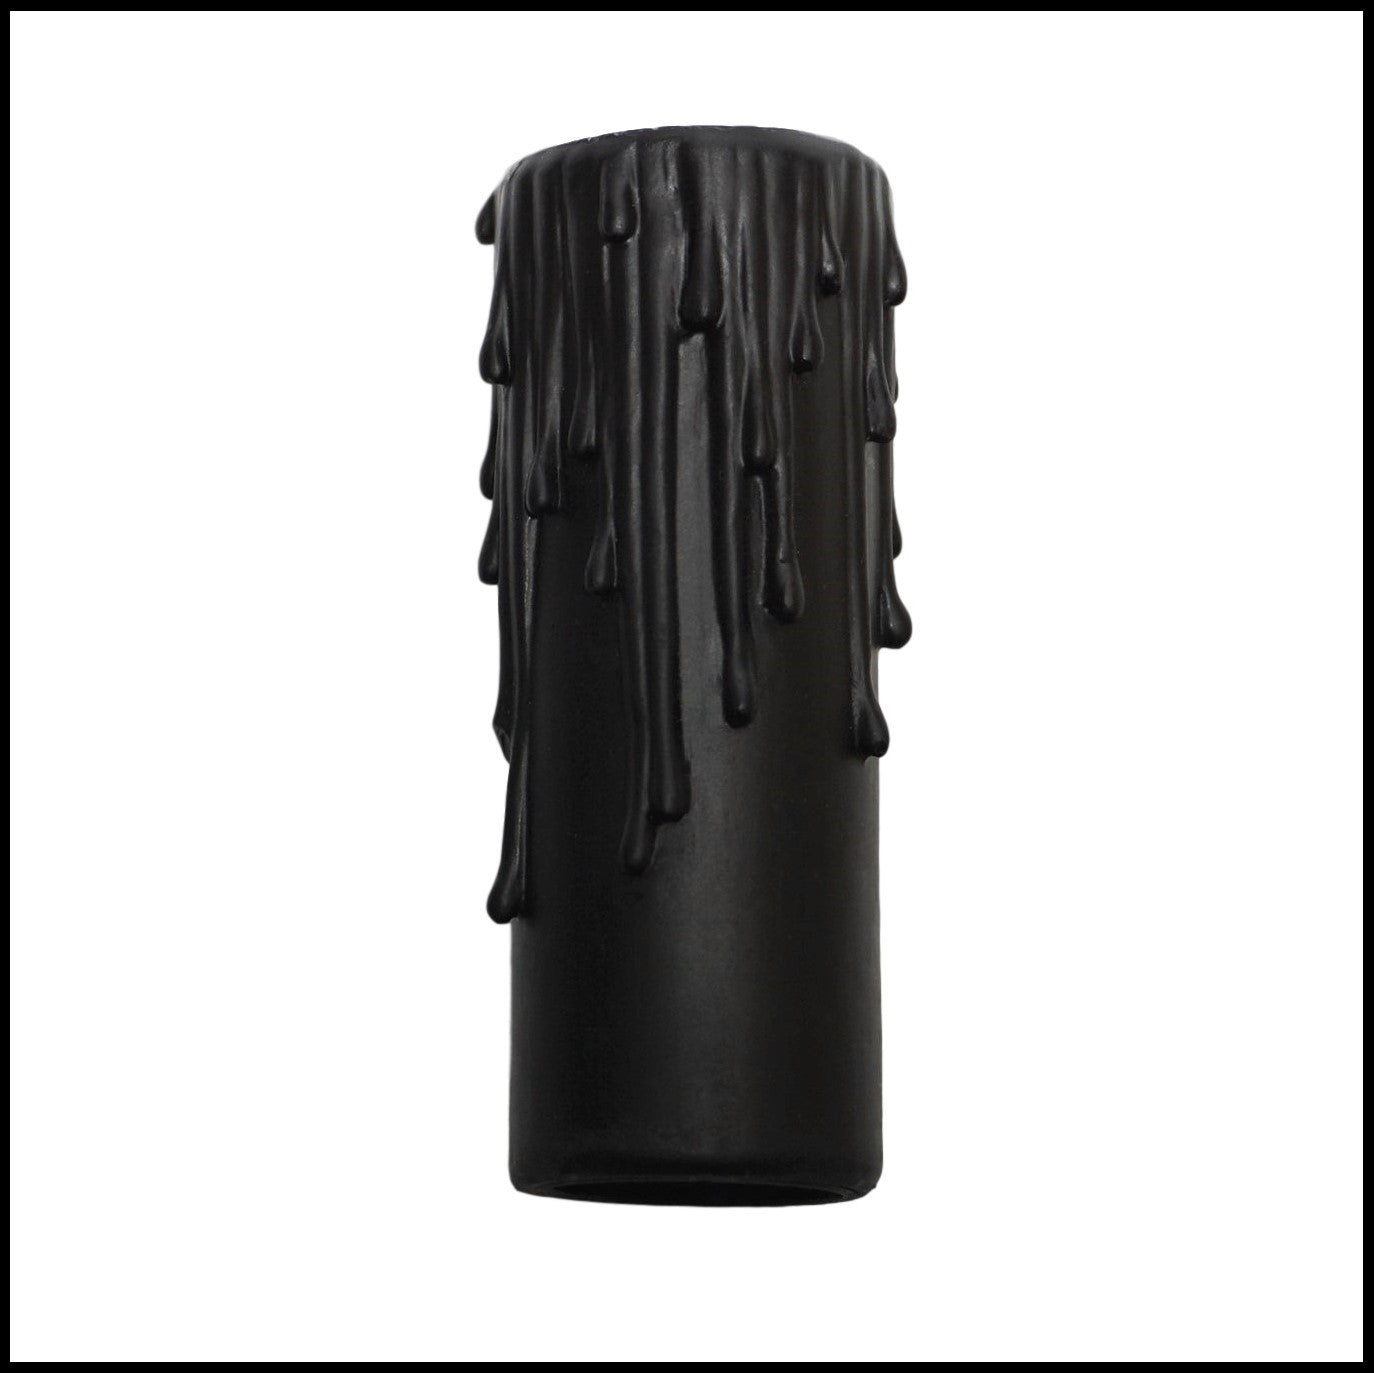 Matte Black Resin Candle Cover - Candelabra